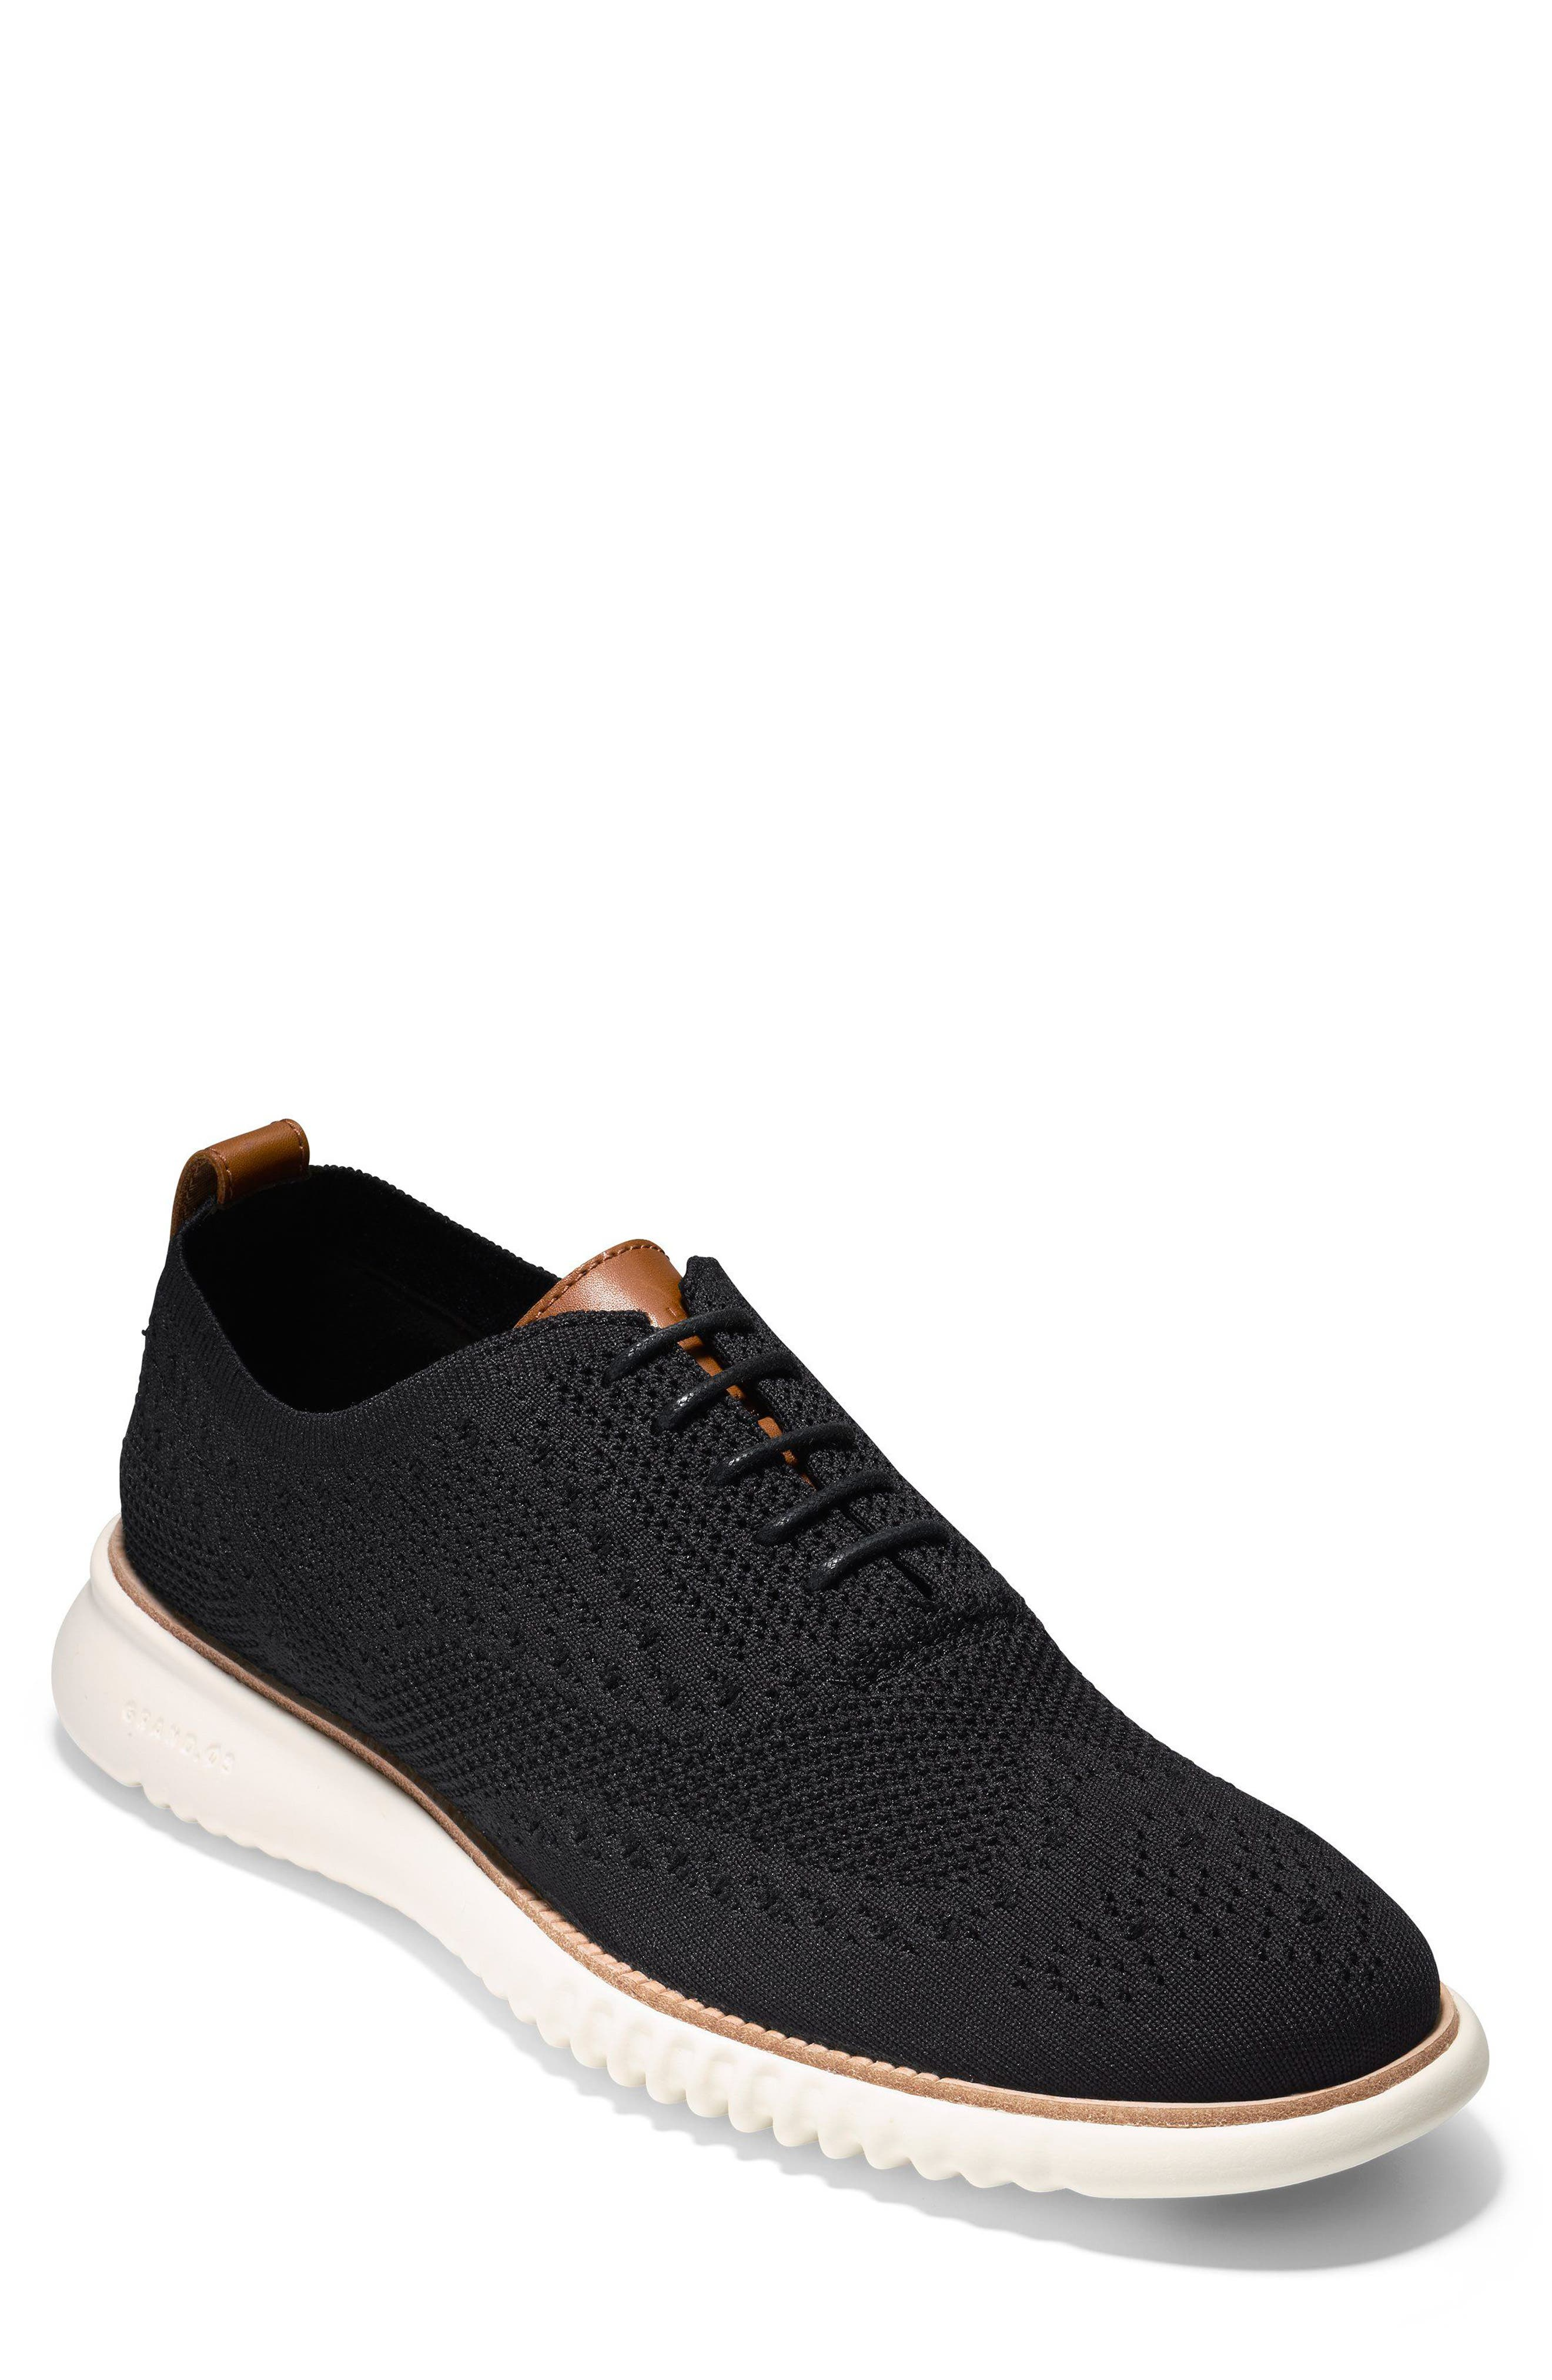 COLE HAAN 2.ZeroGrand Stitchlite Water Resistant Wingtip, Main, color, BLACK/ IVORY